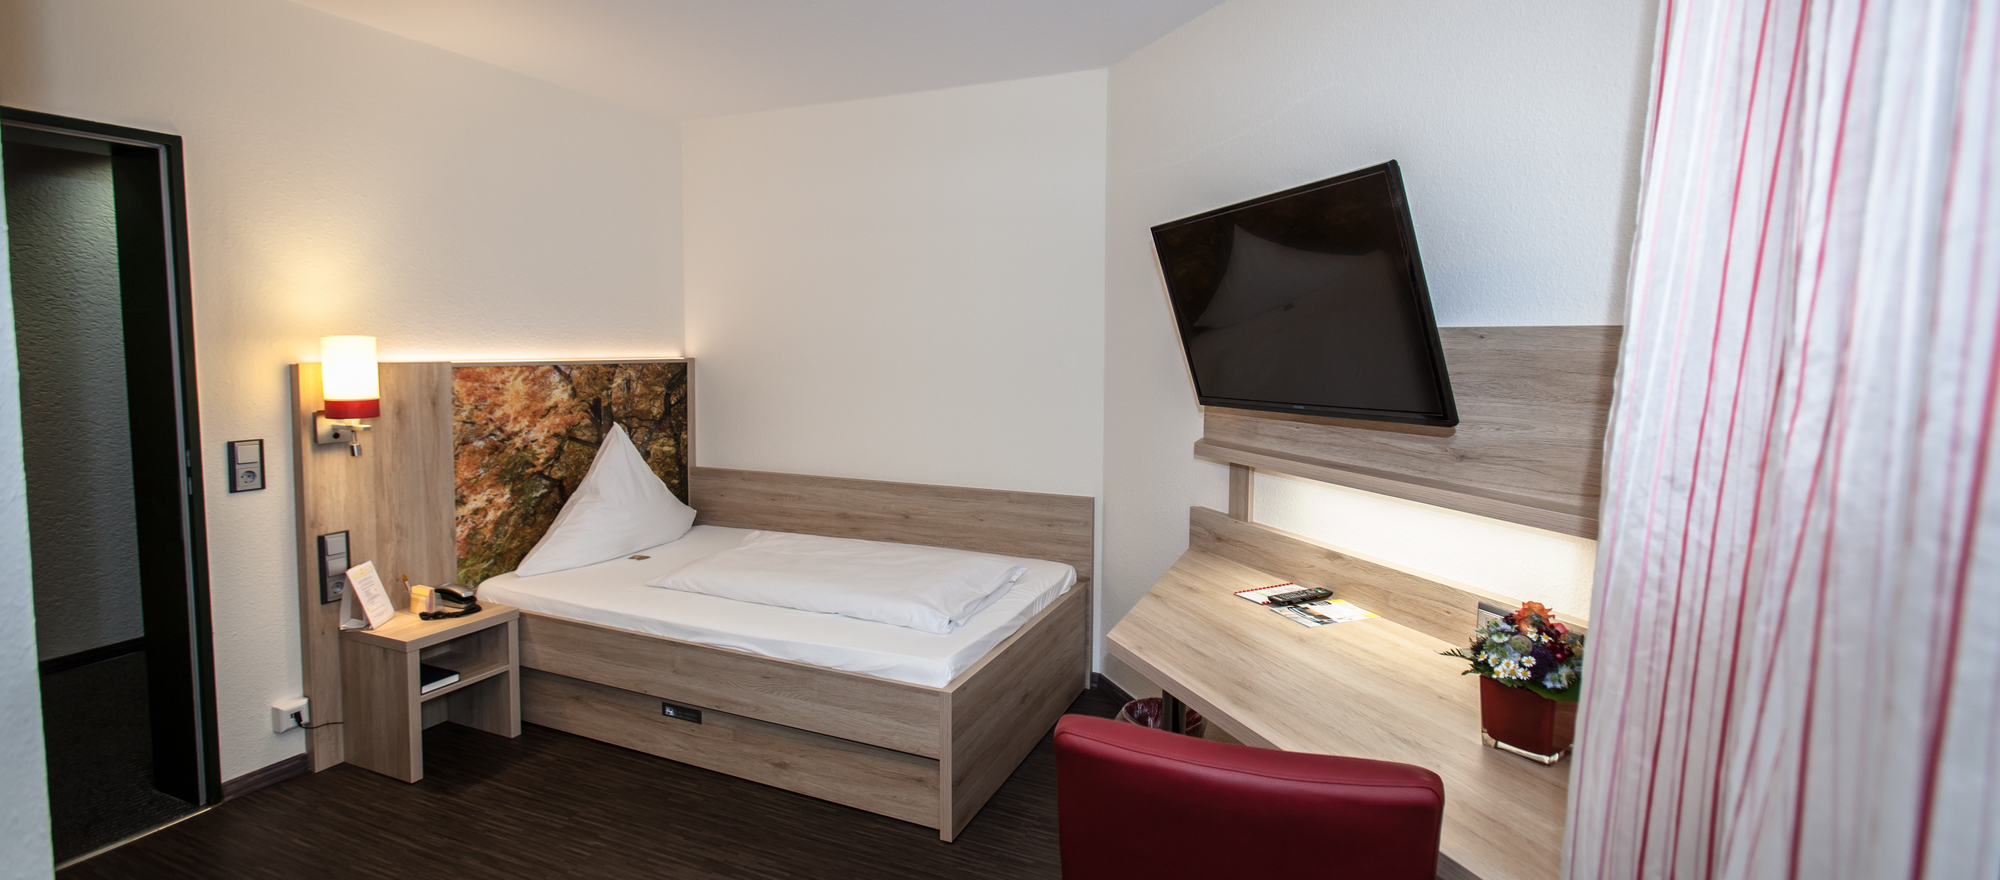 Business single room in the 4-star hotel Ringhotel Gasthof Hasen in Herrenberg